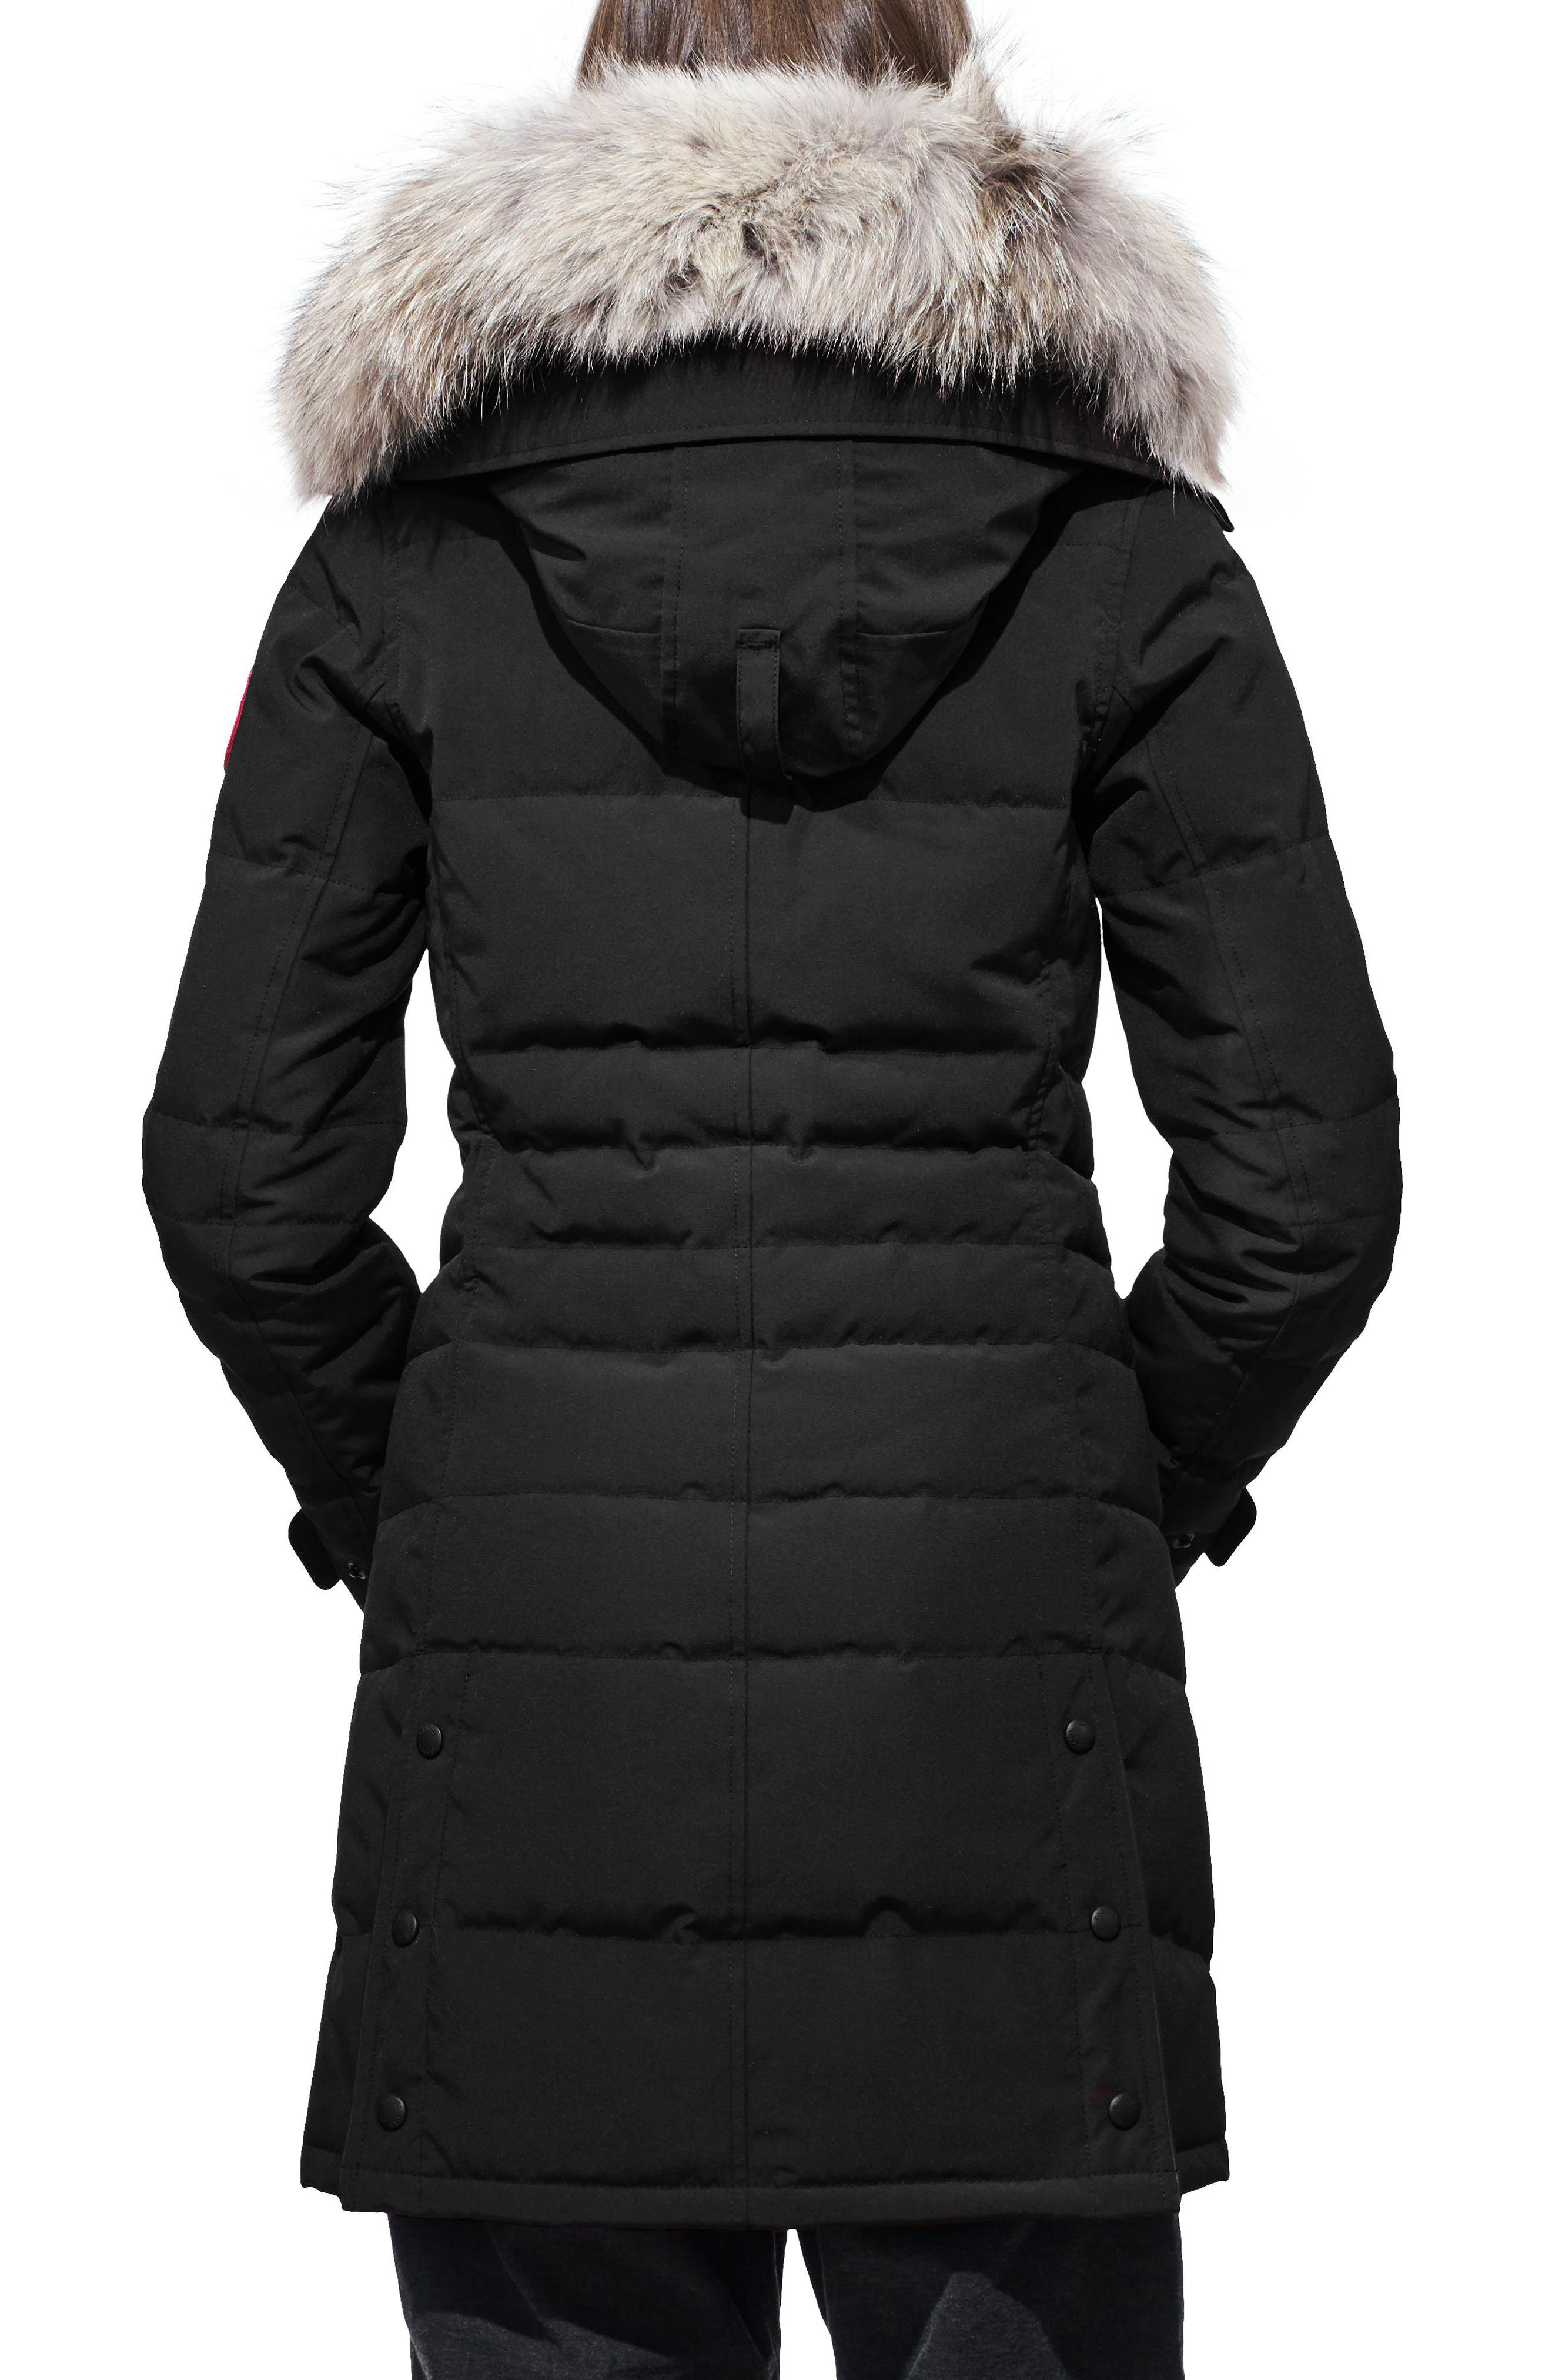 Lorette Fusion Fit Hooded Down Parka with Genuine Coyote Fur Trim,                             Alternate thumbnail 2, color,                             001